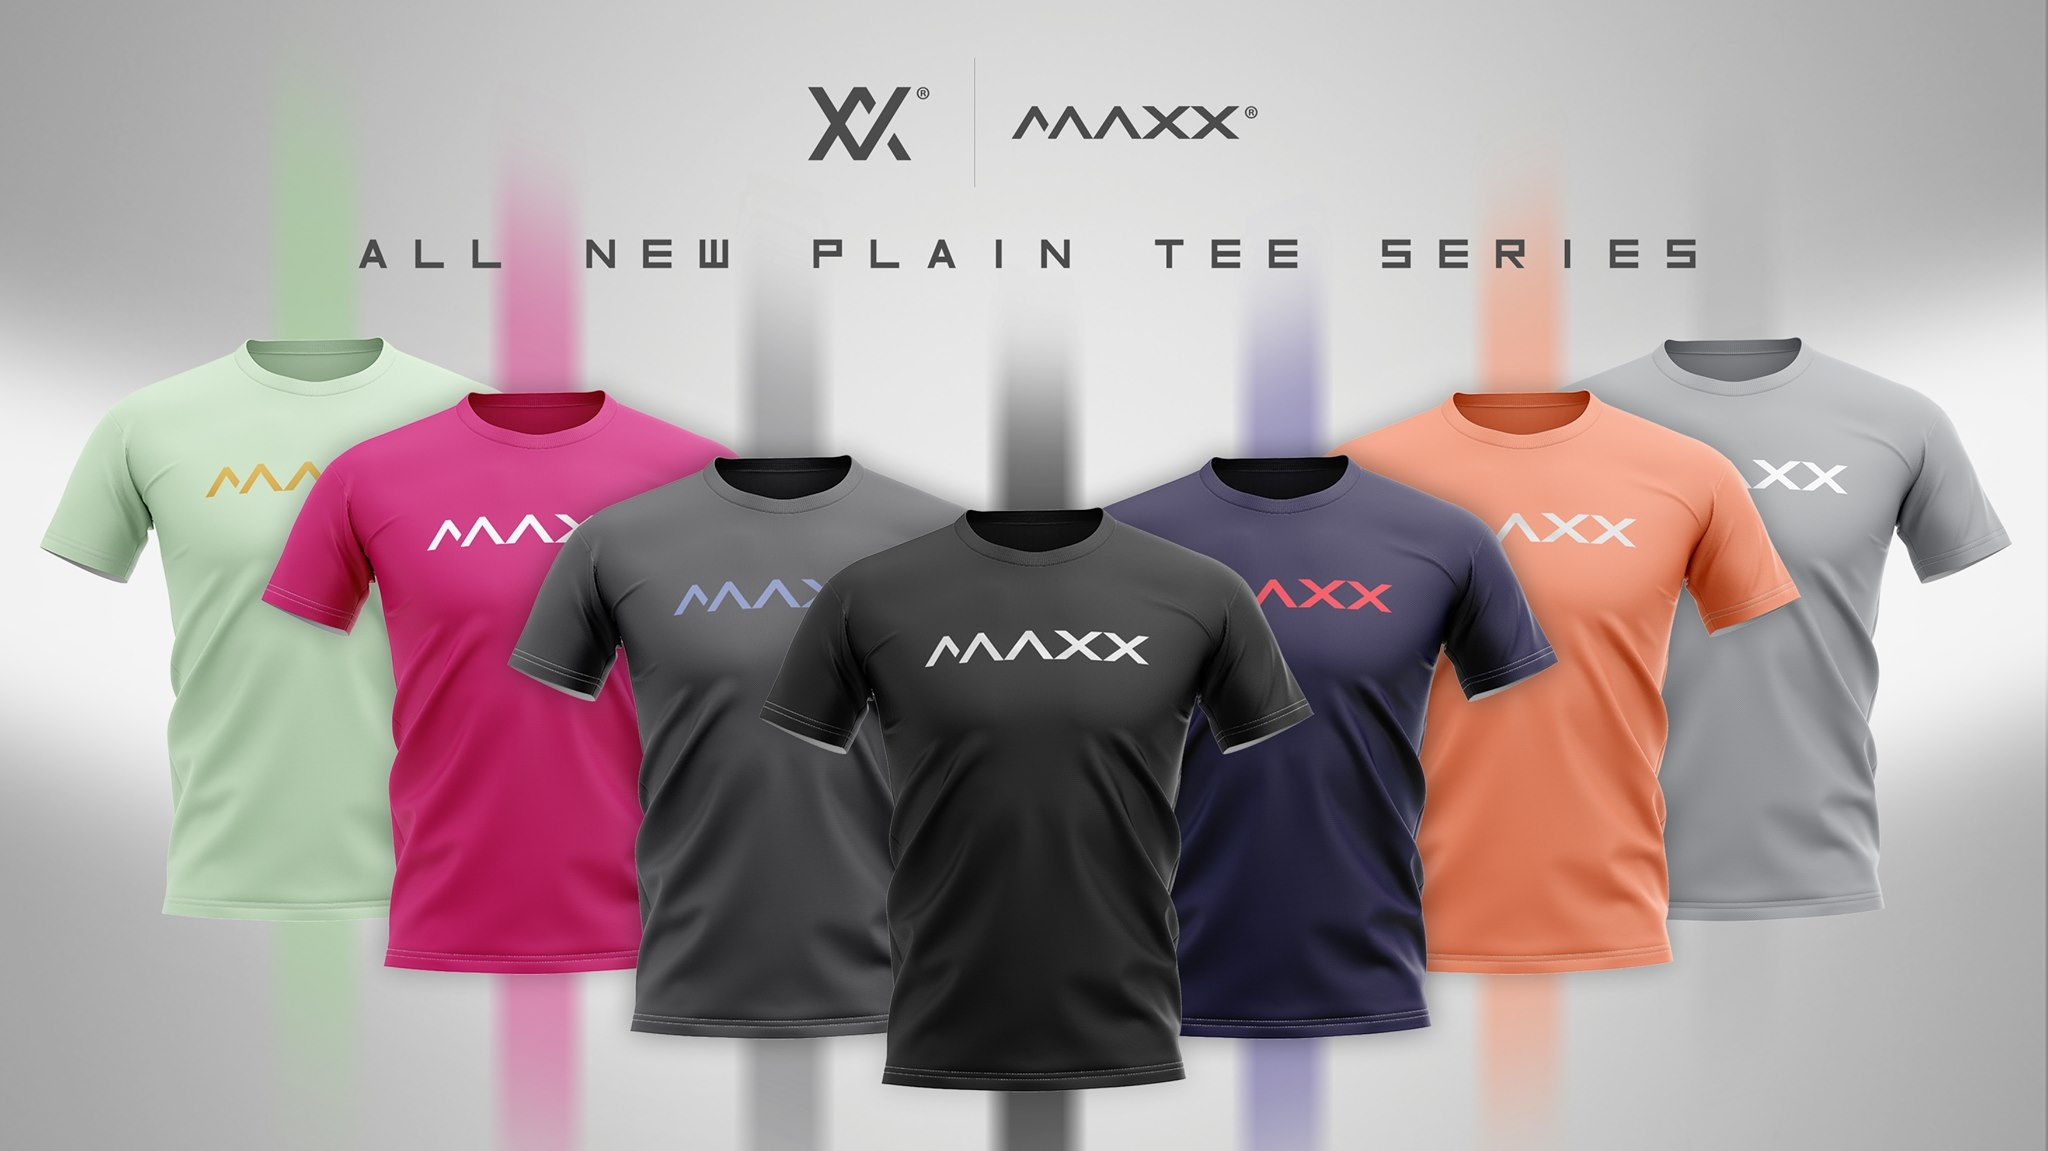 MAXX NEW plain tee